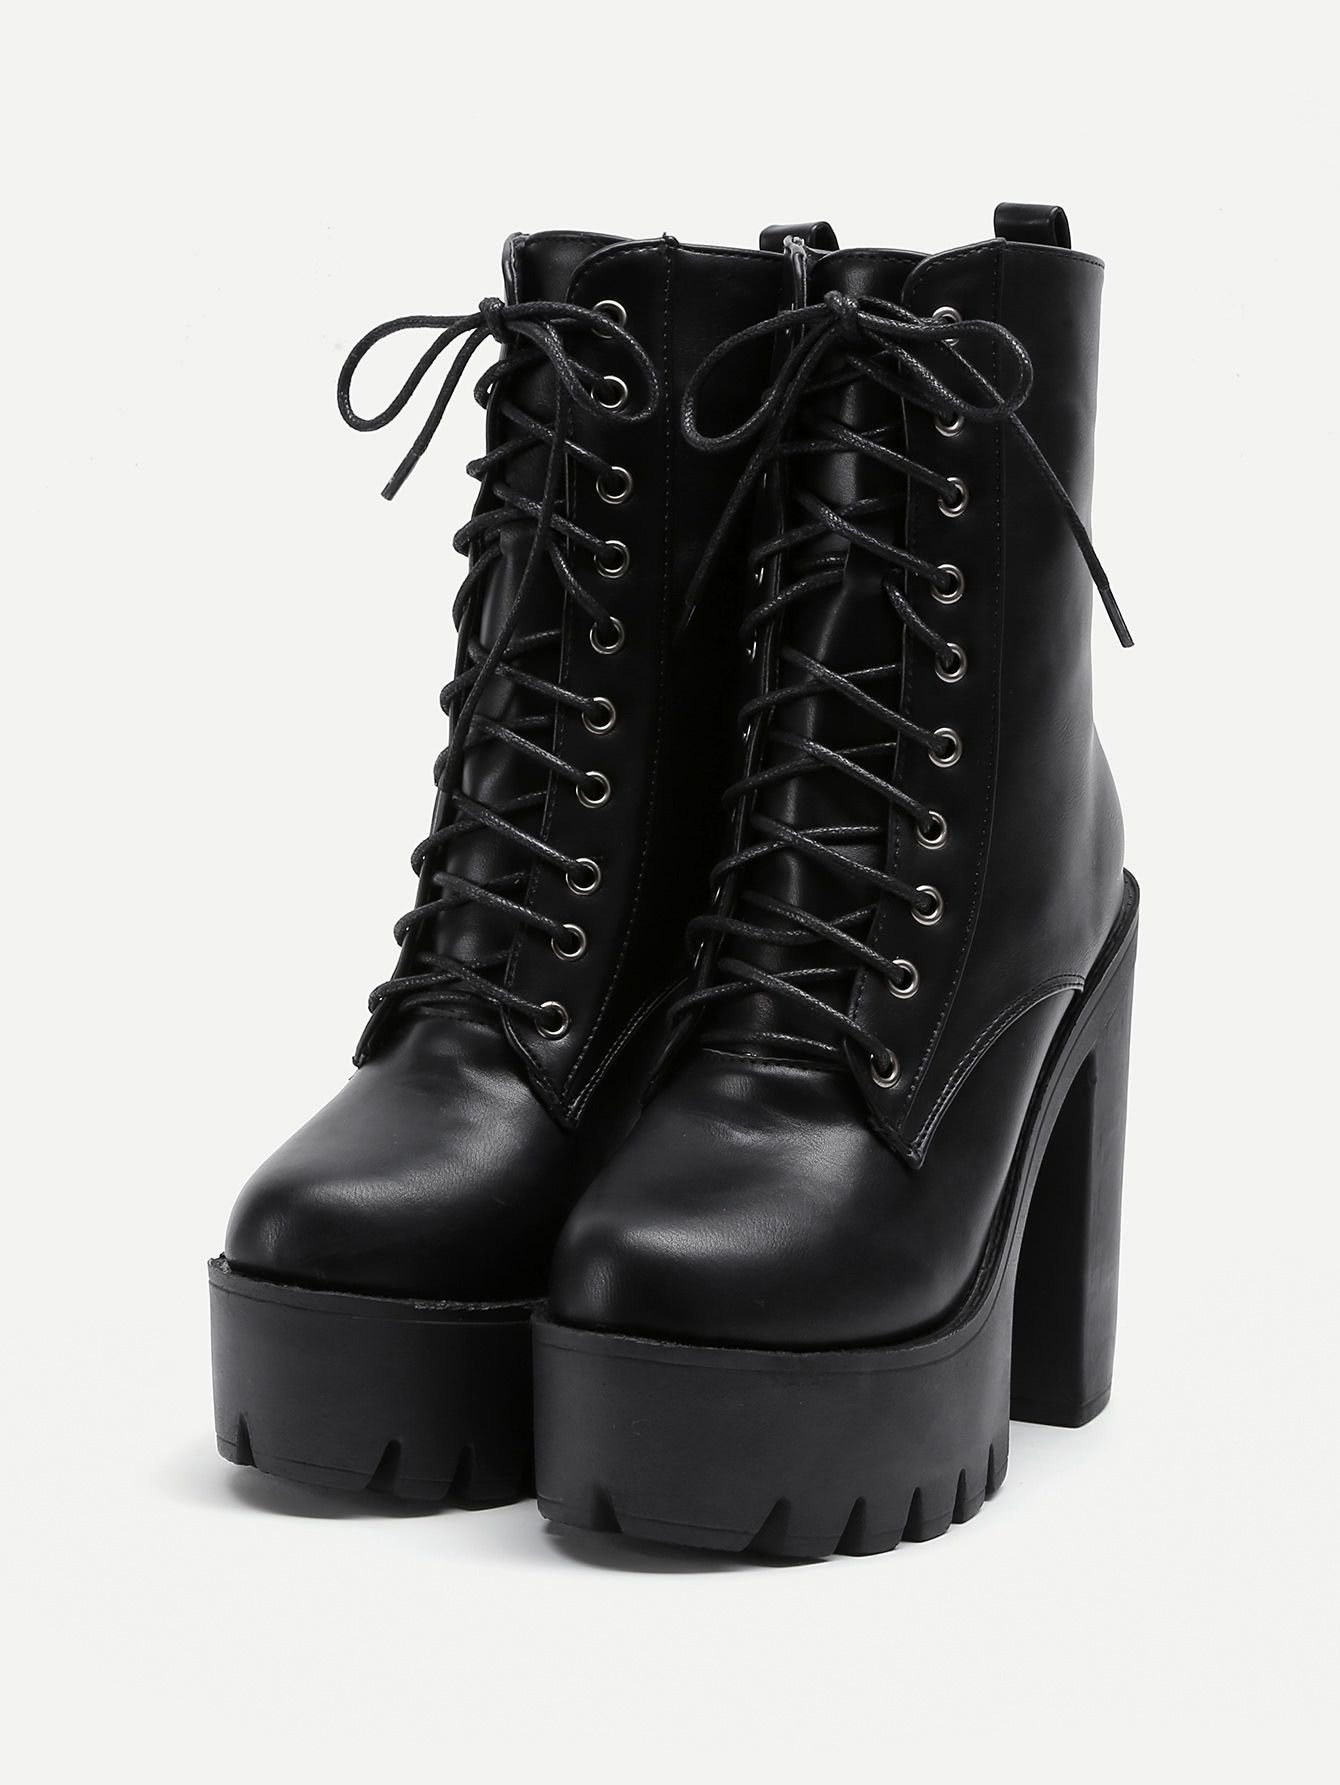 f89ccd5fca Platform Lace Up PU Heeled Boots -SheIn(Sheinside) | Shoes in 2019 ...